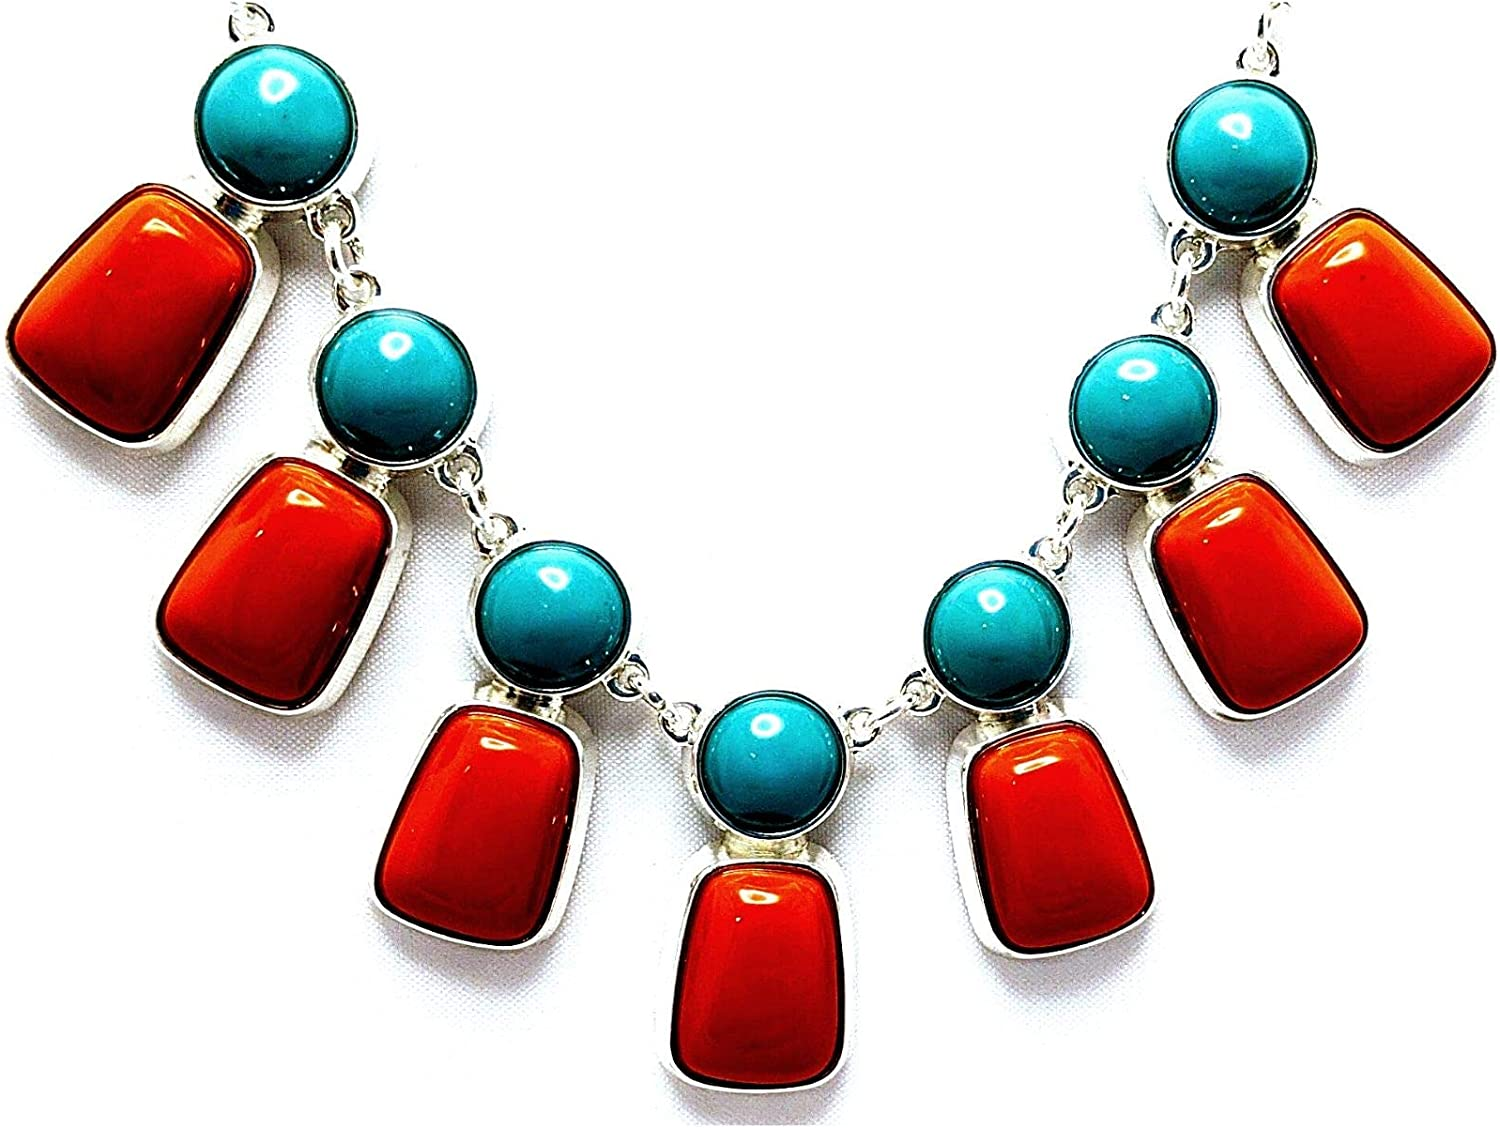 Exotic collar necklace